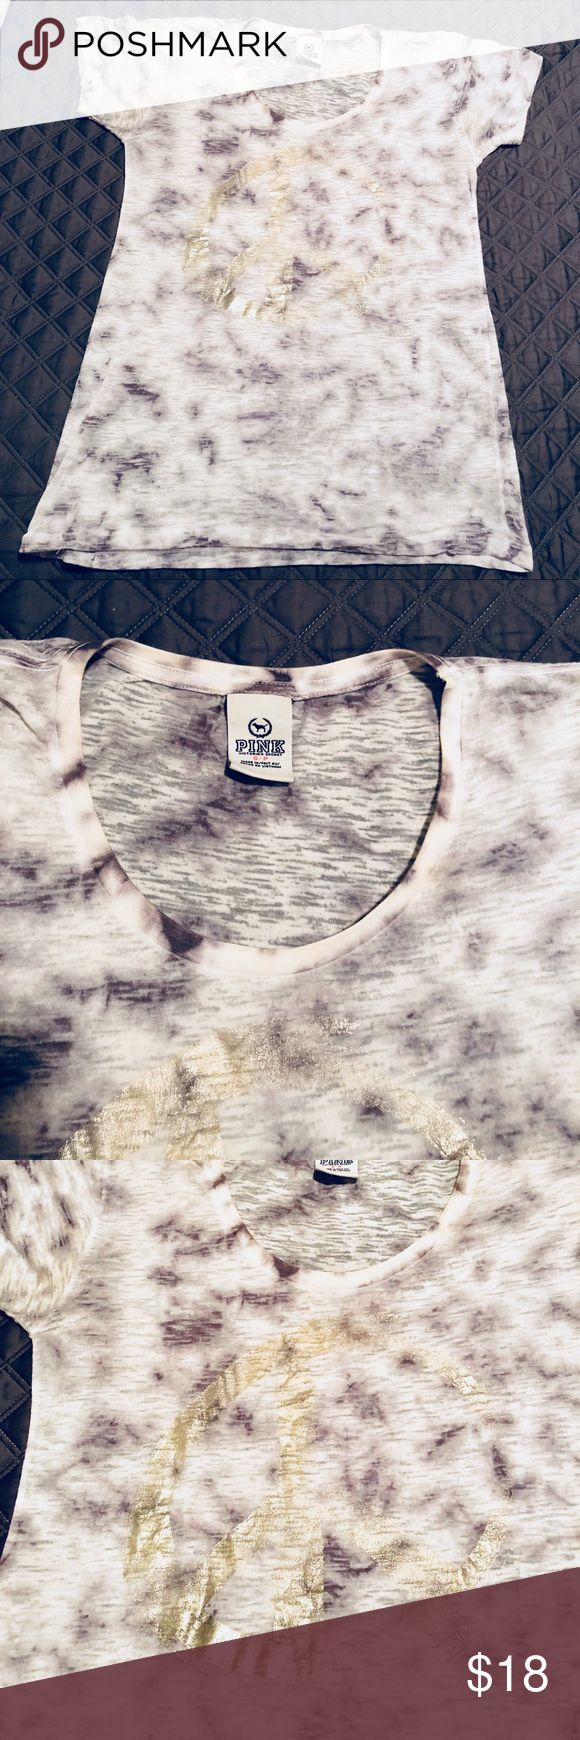 PINK Victoria's Secret ✌️ burnout tee Super soft burnout tee in white/gray tie dye with gold foil peace sign. Gently worn with some fading/discoloration in some spots, but not noticeable due to the distressed/weathered look which is by design! PINK Victoria's Secret Tops Tees - Short Sleeve